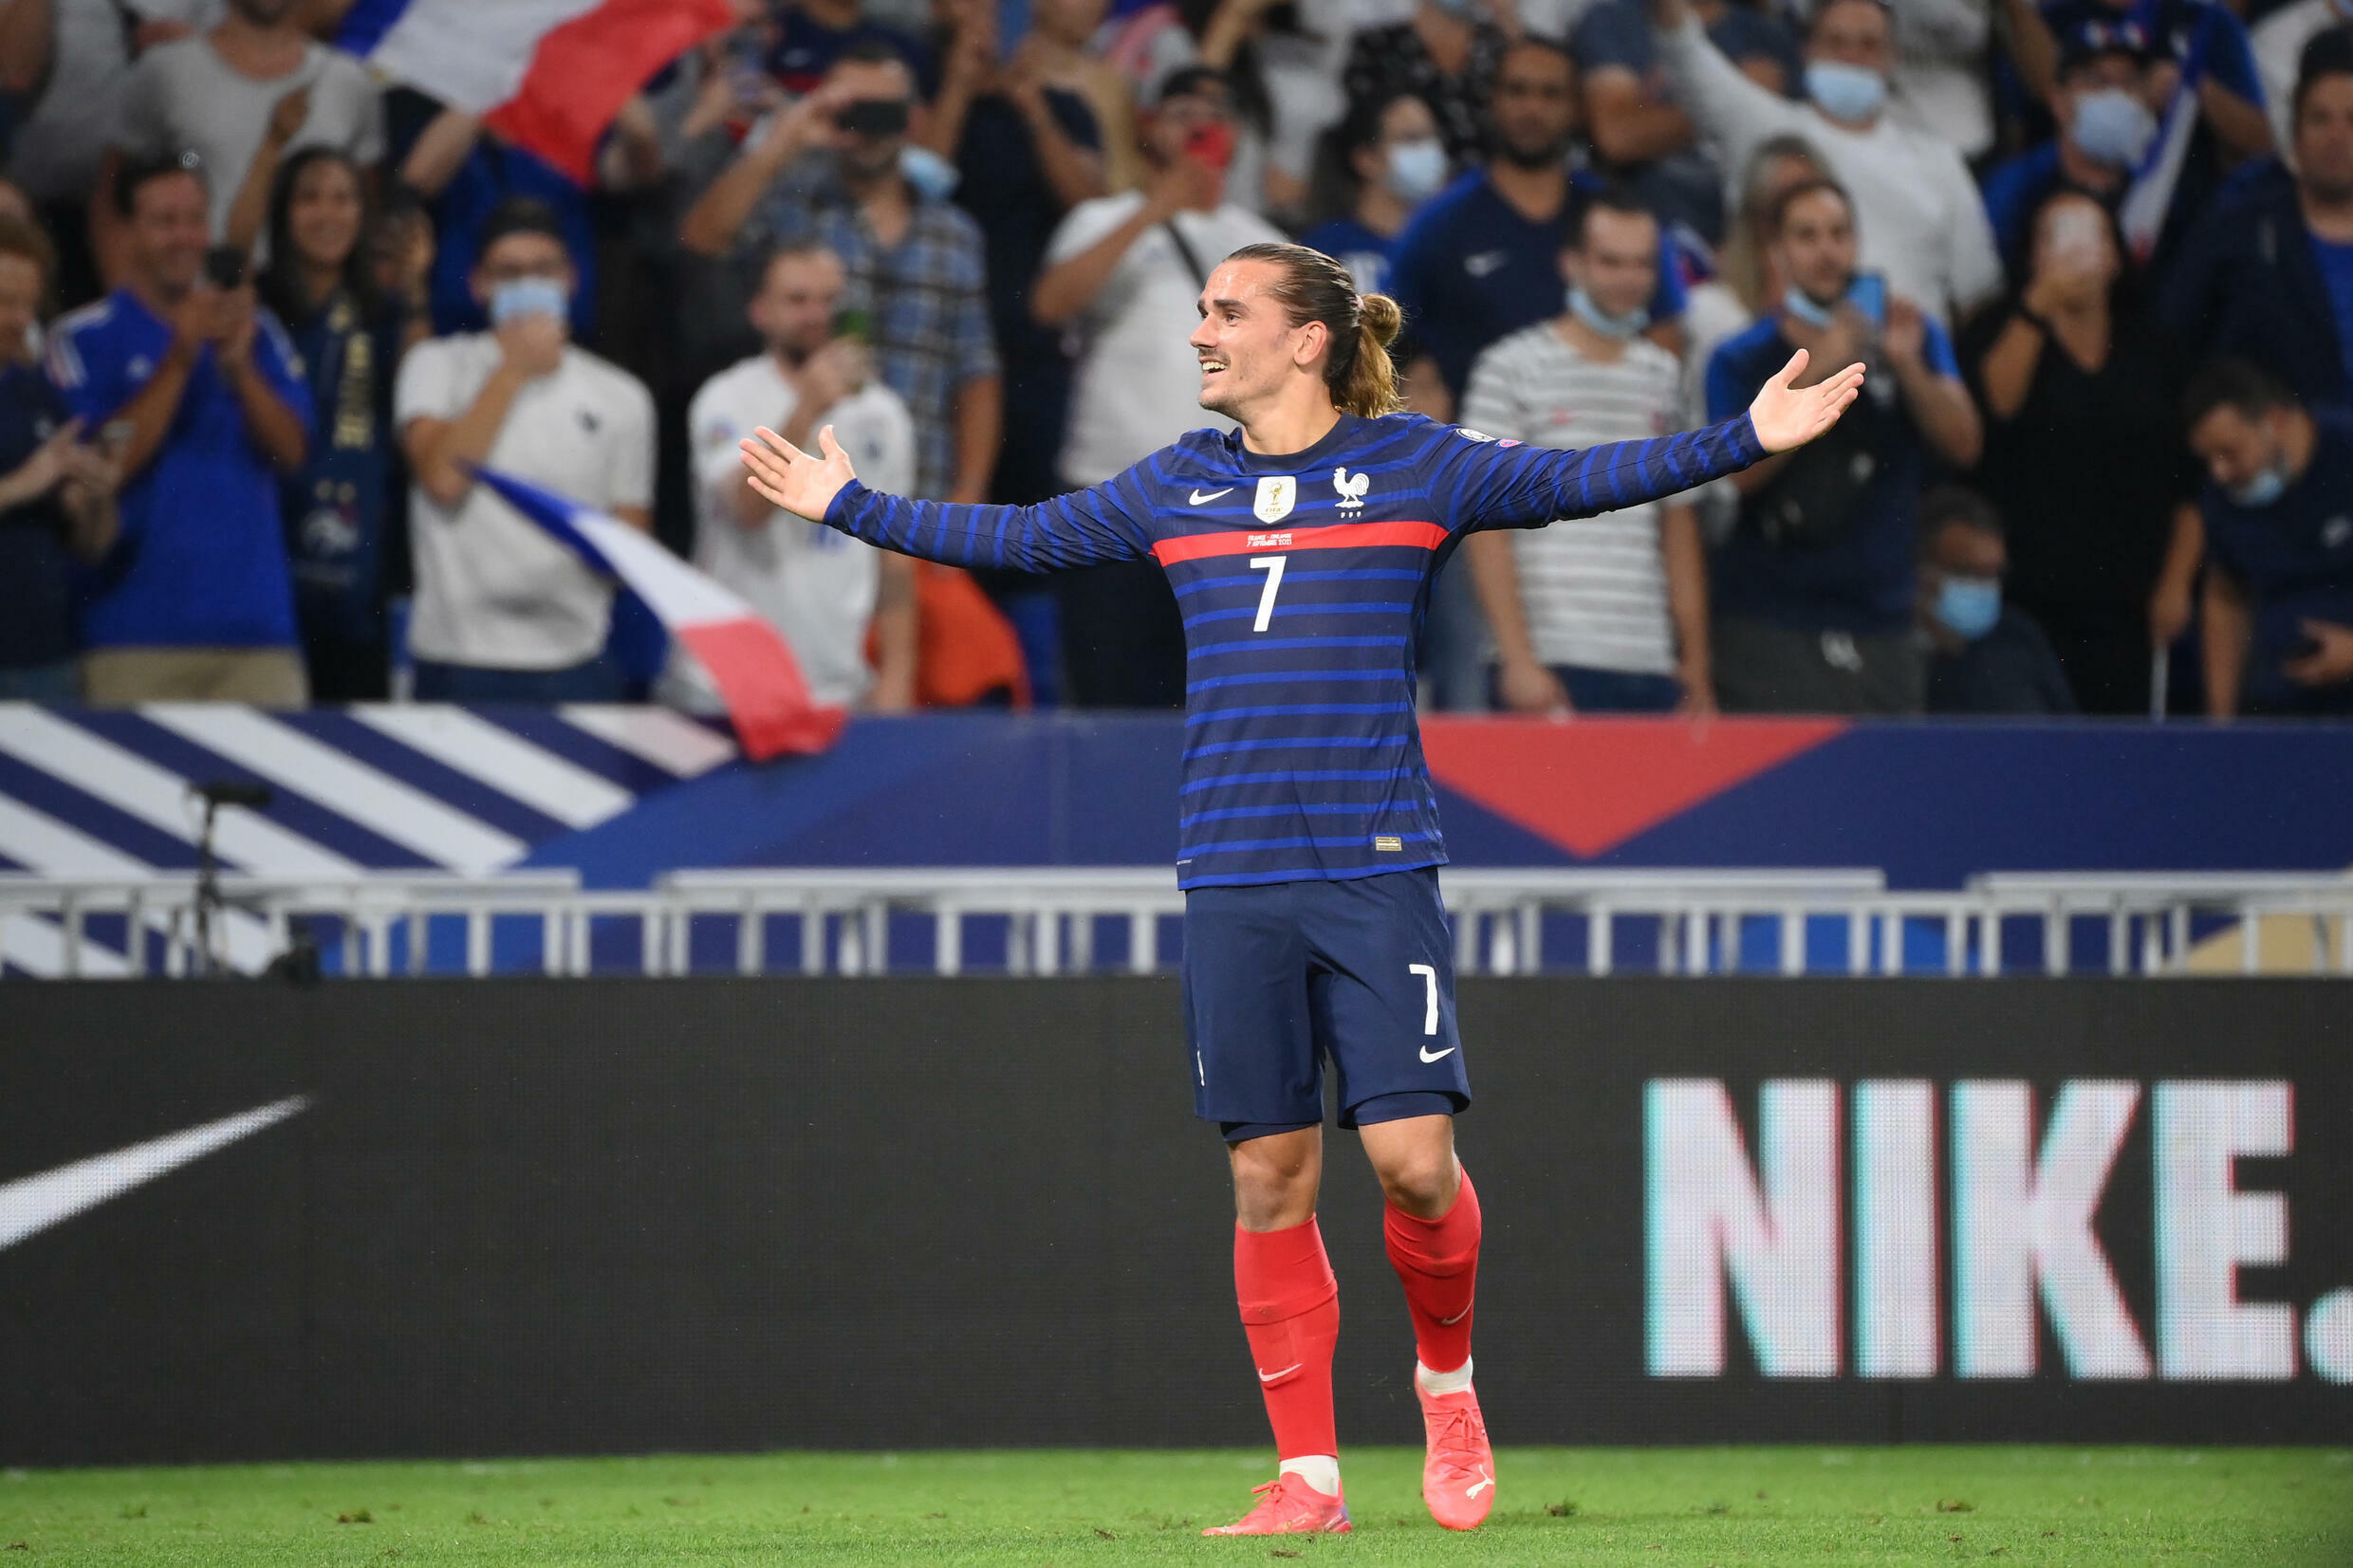 Antoine Griezmann scored twice as France won for the first time in six matches